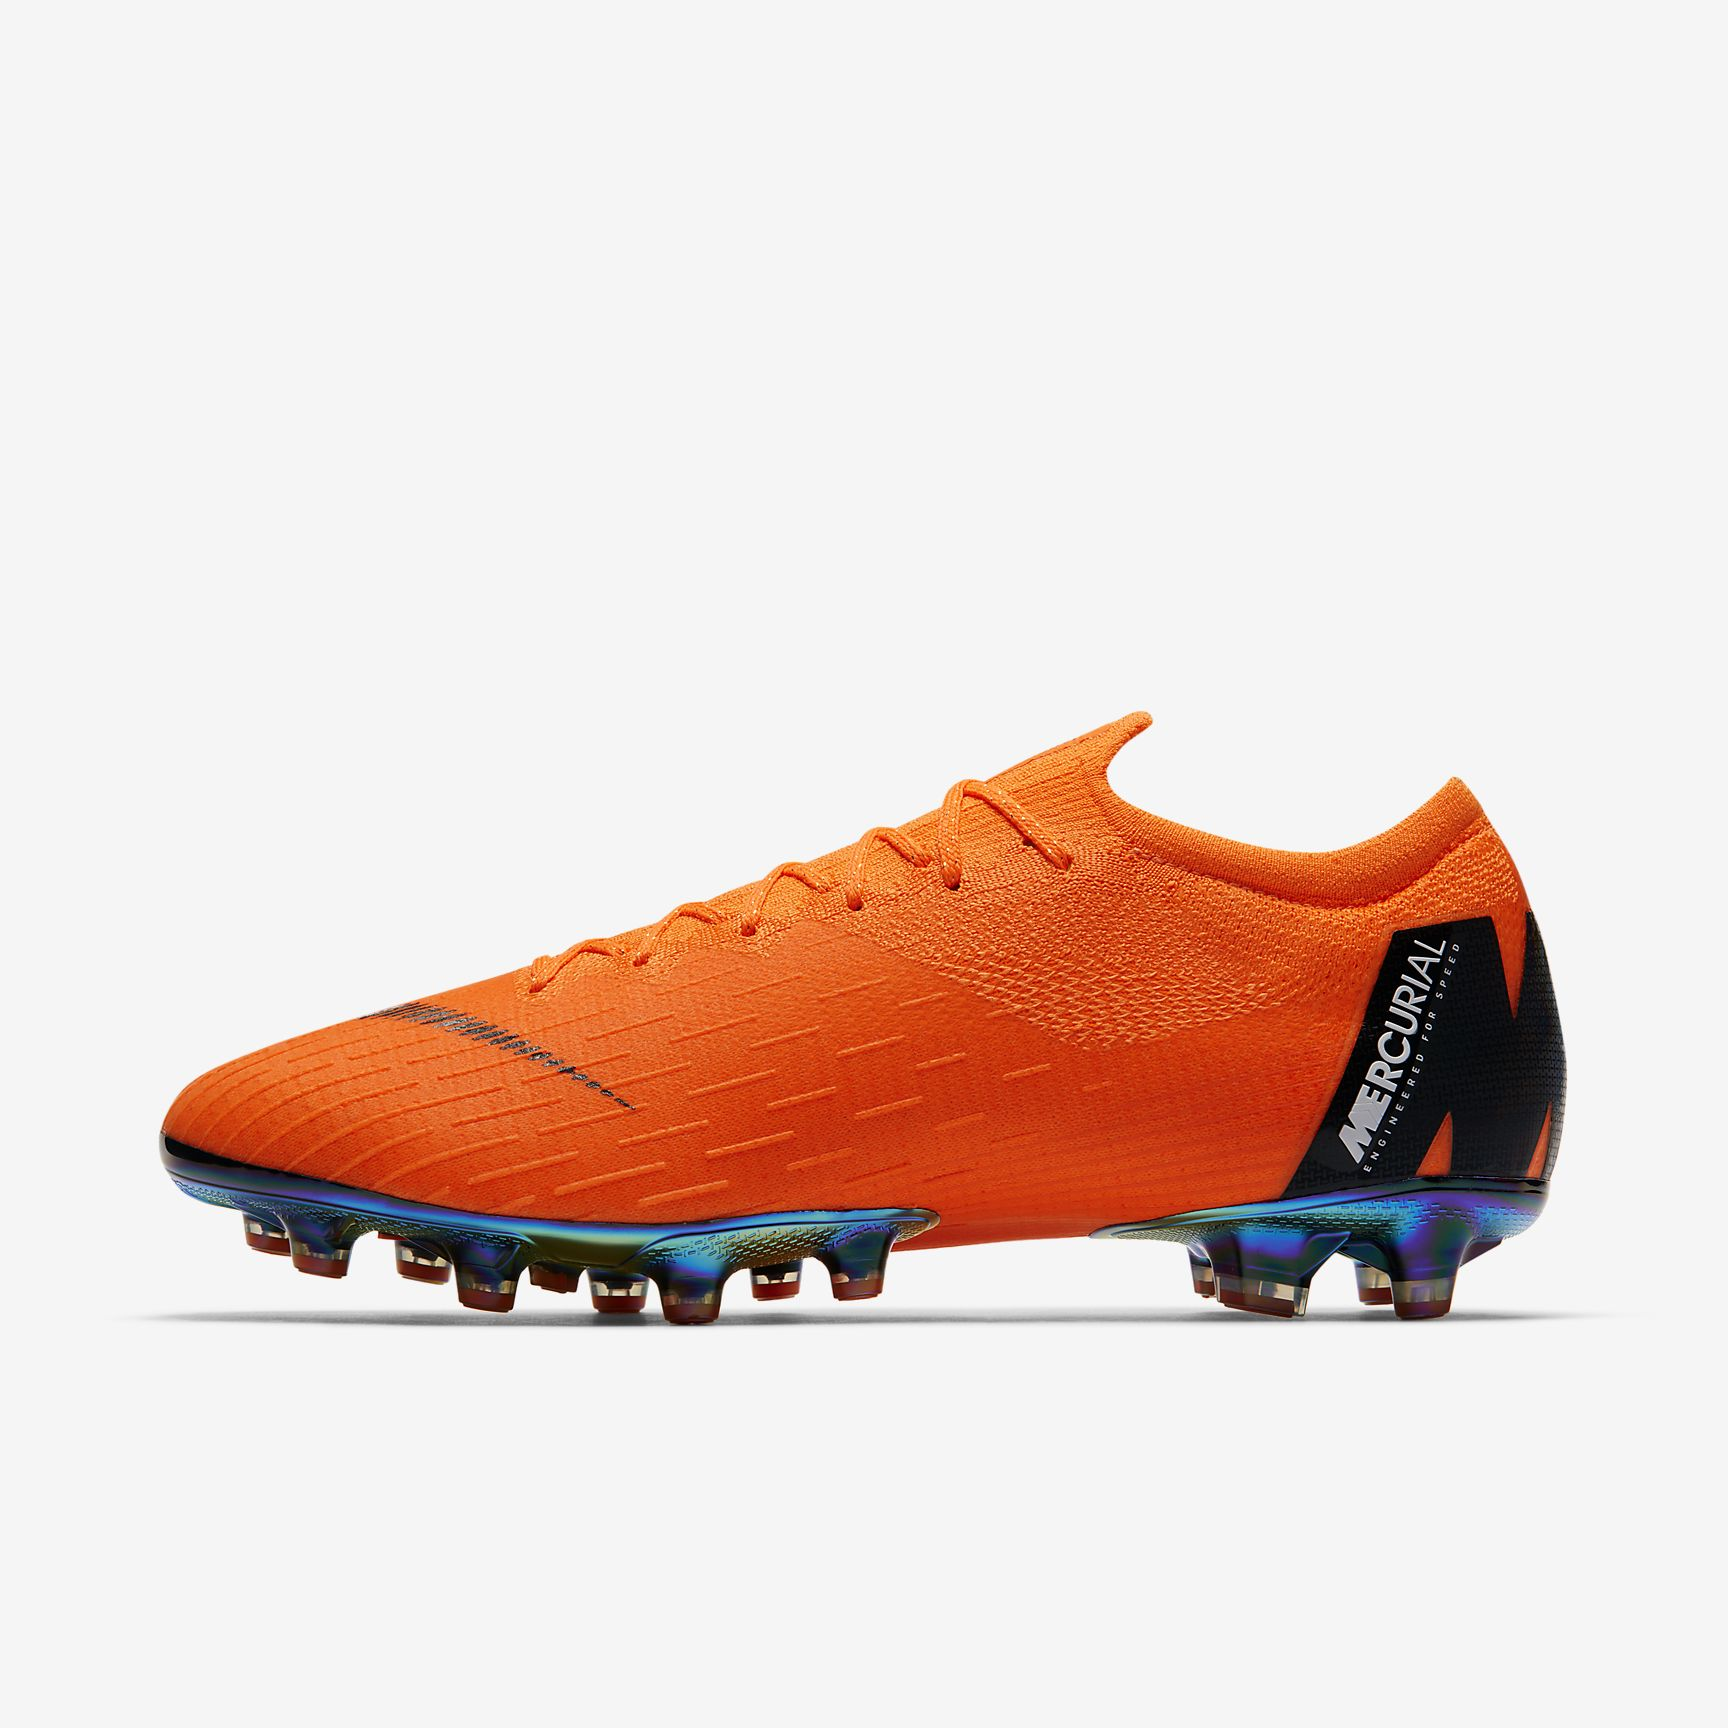 chaussures-football-Nike-Mercurial-Vapor-XII-Elite-img1